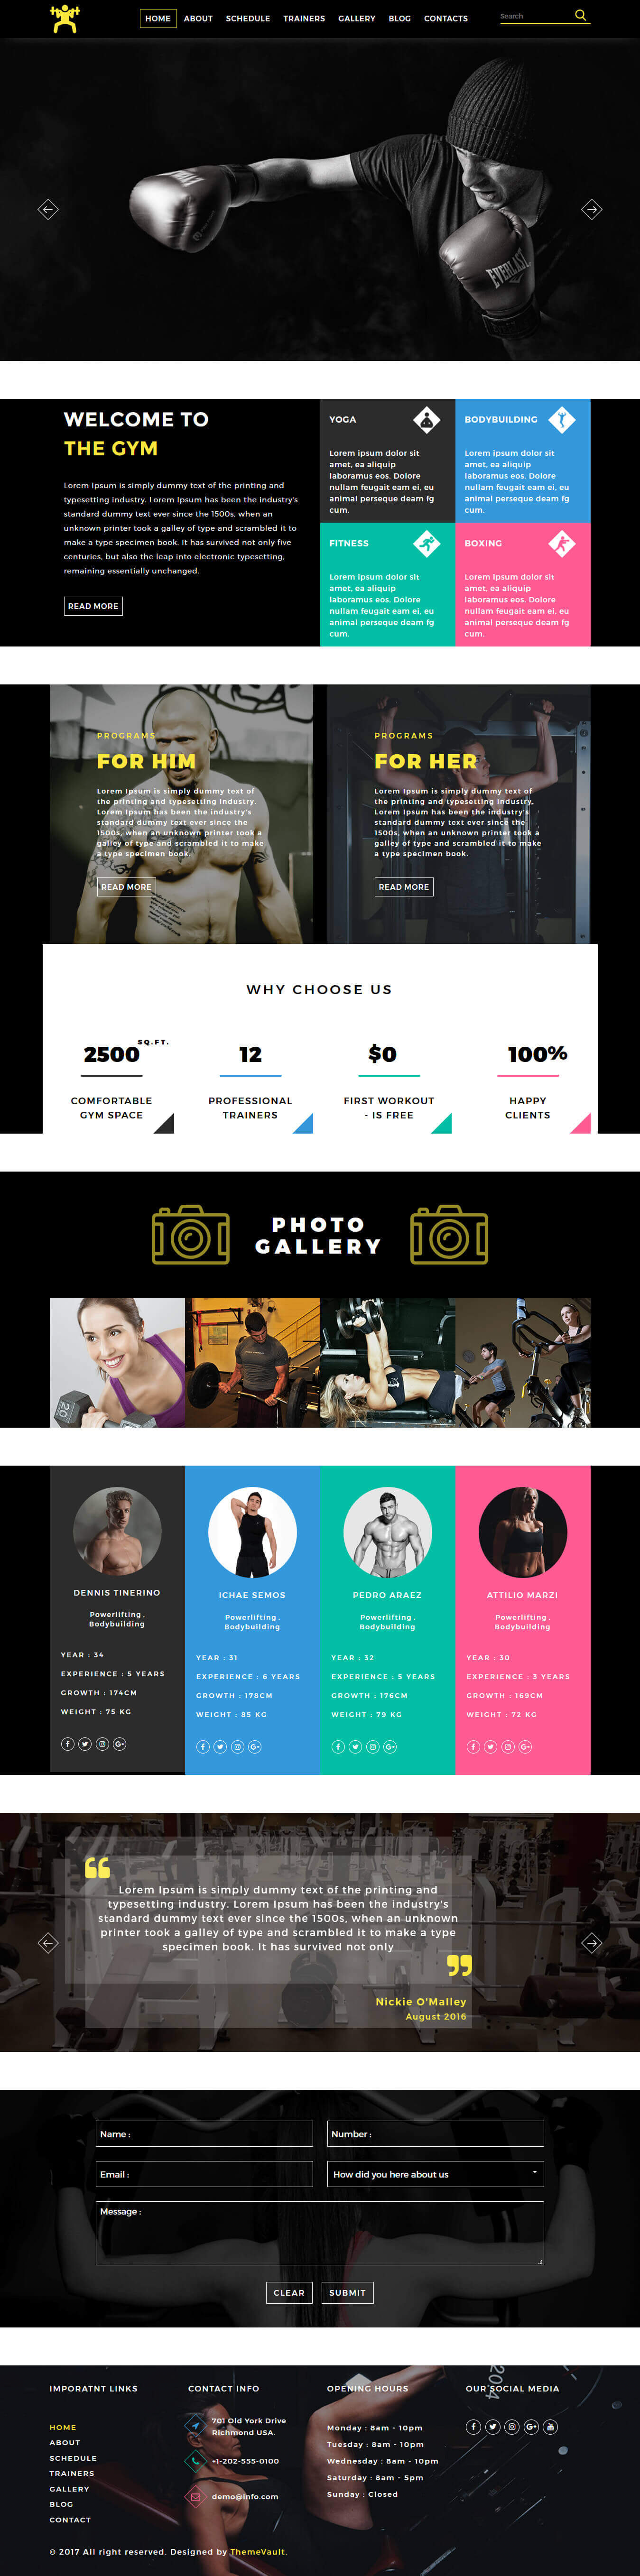 Gym-Fitcare - Health and Fitness Website Templates